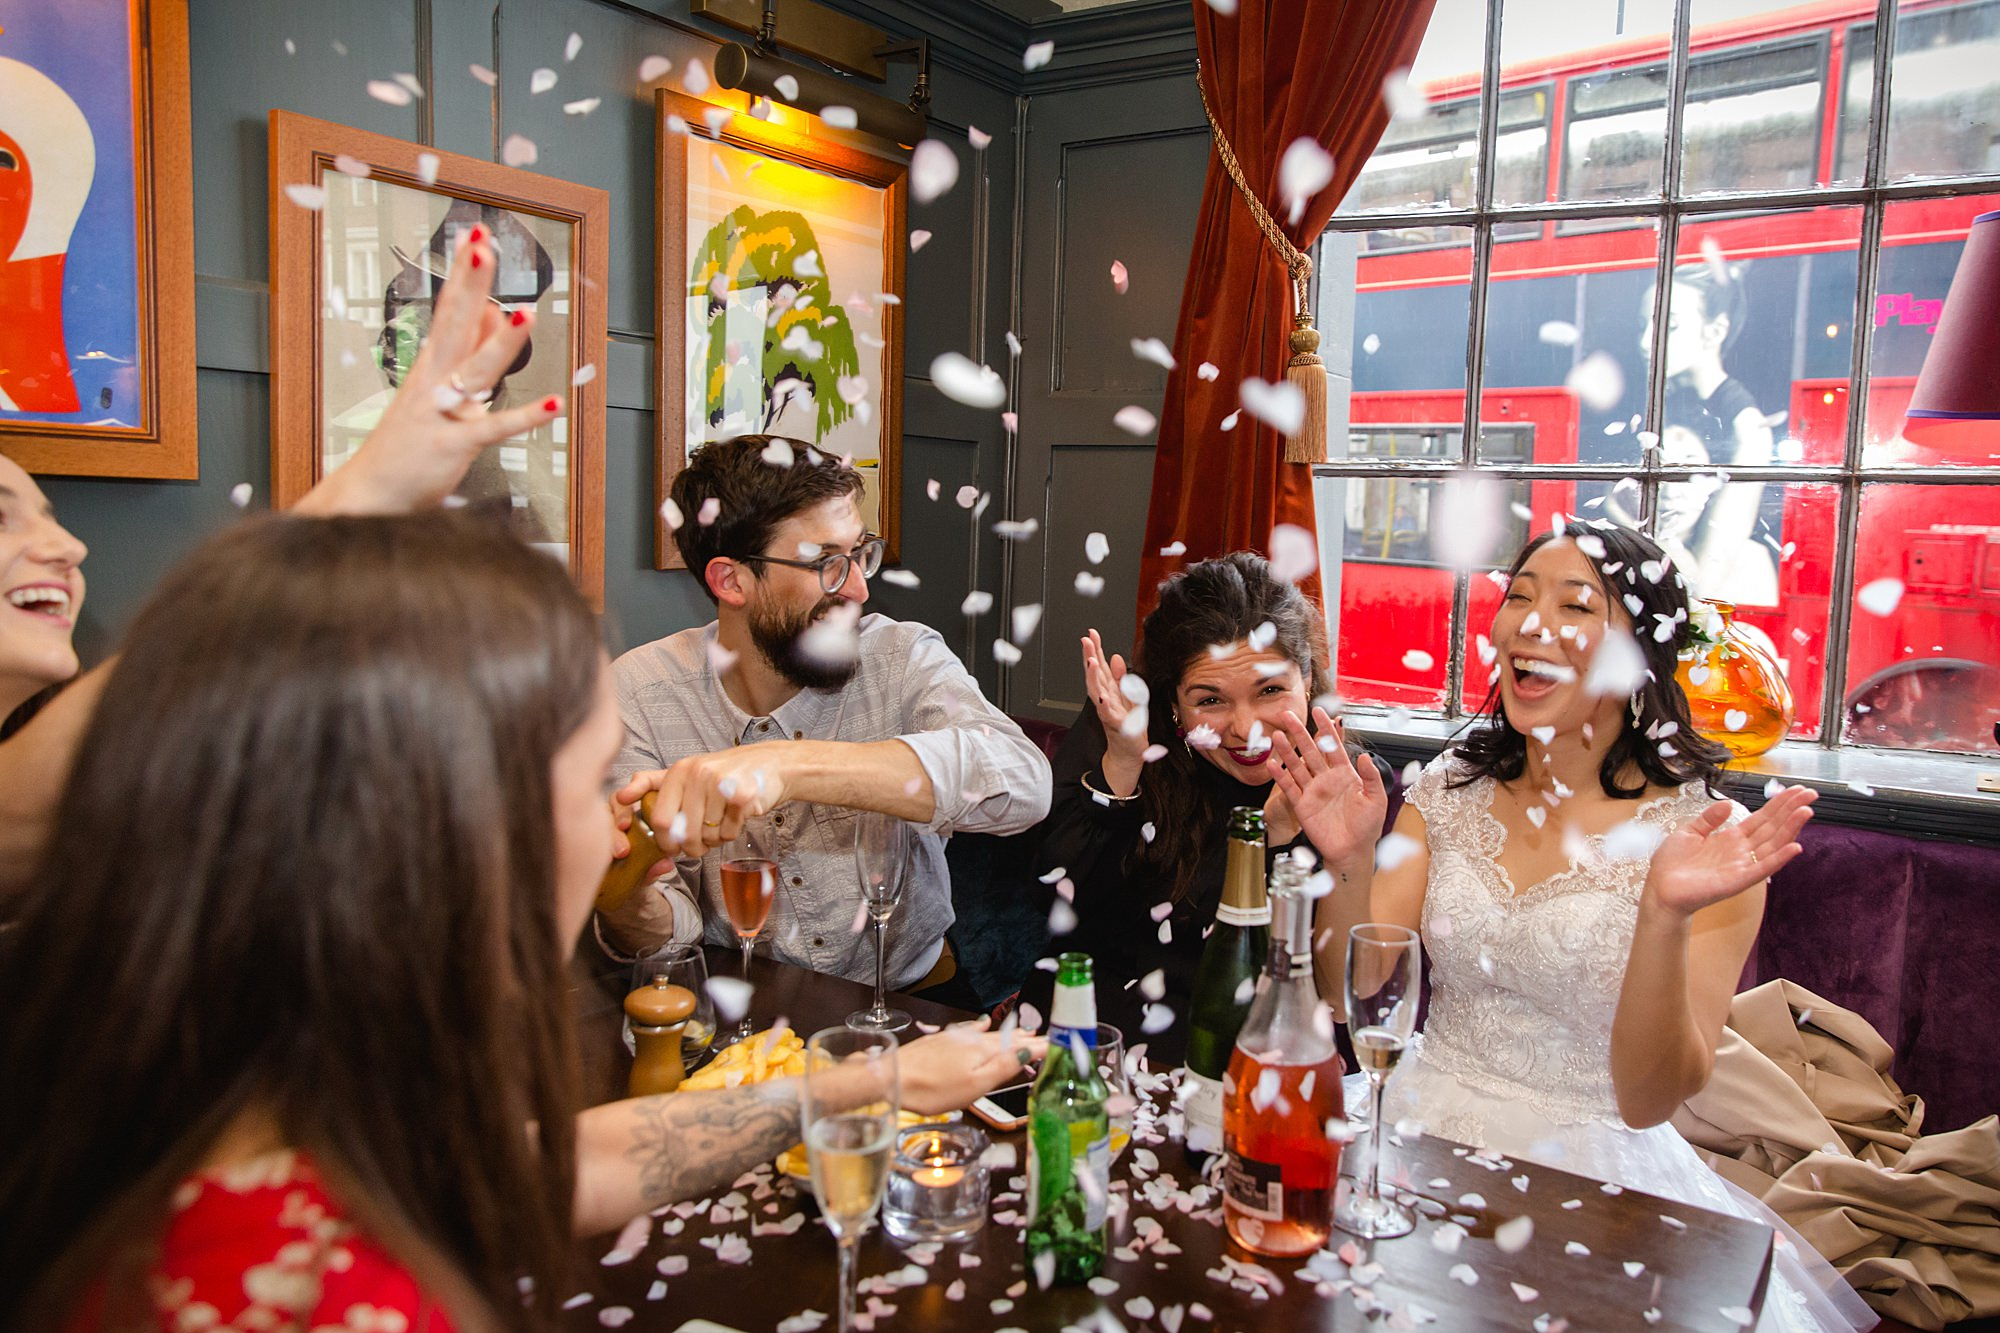 Wandsworth pub wedding bride laughs during confetti shower